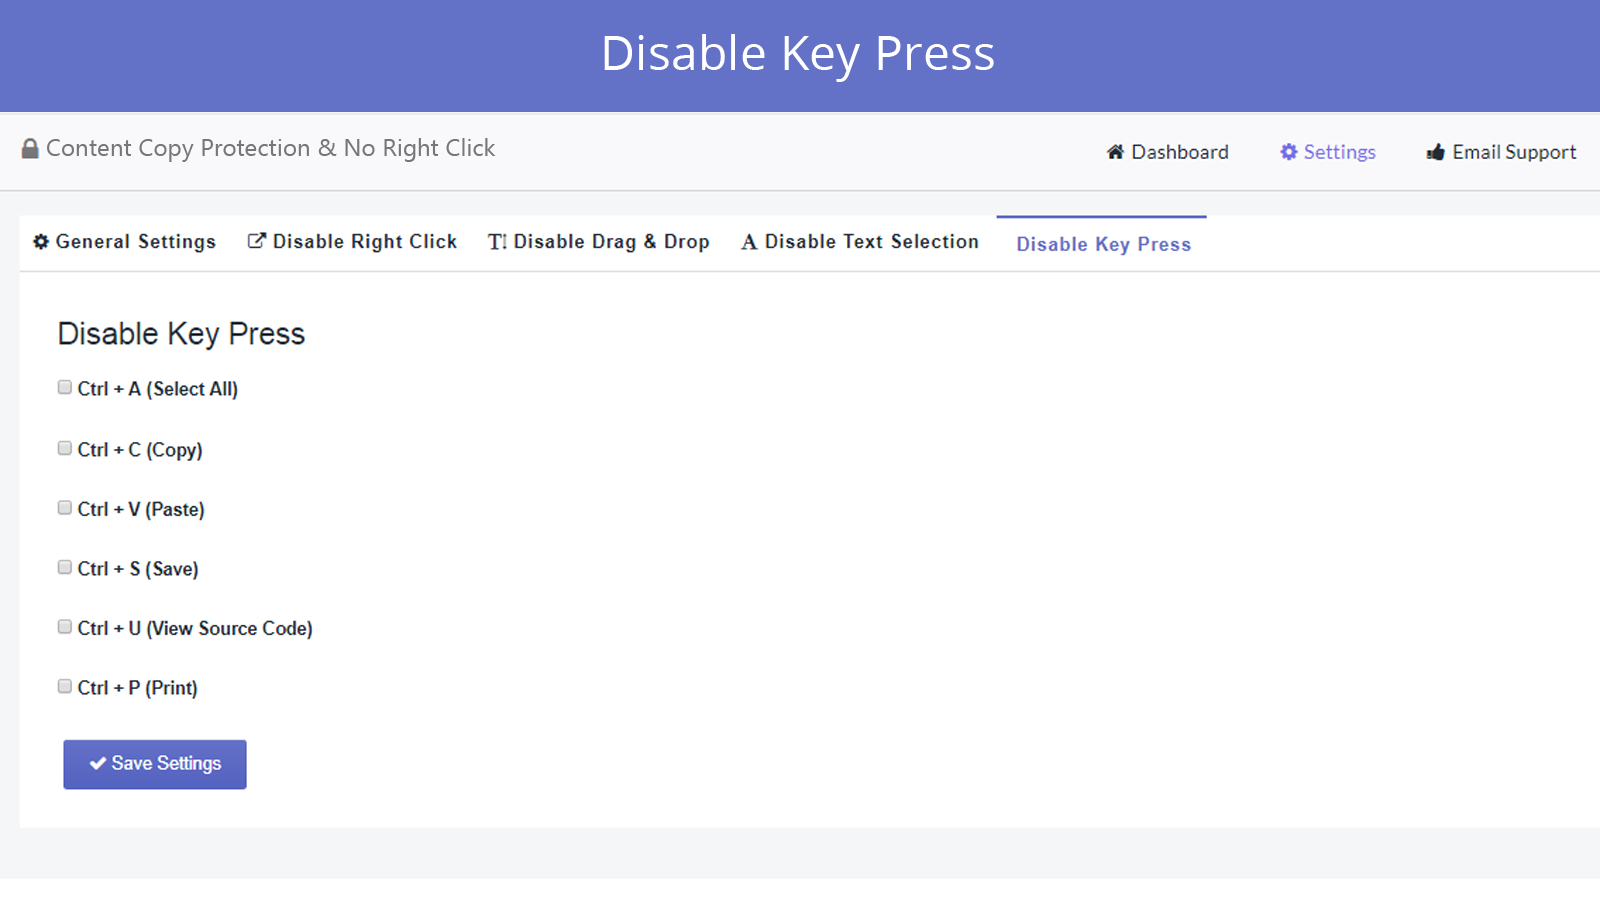 disable key press feature in smart right click disabler app